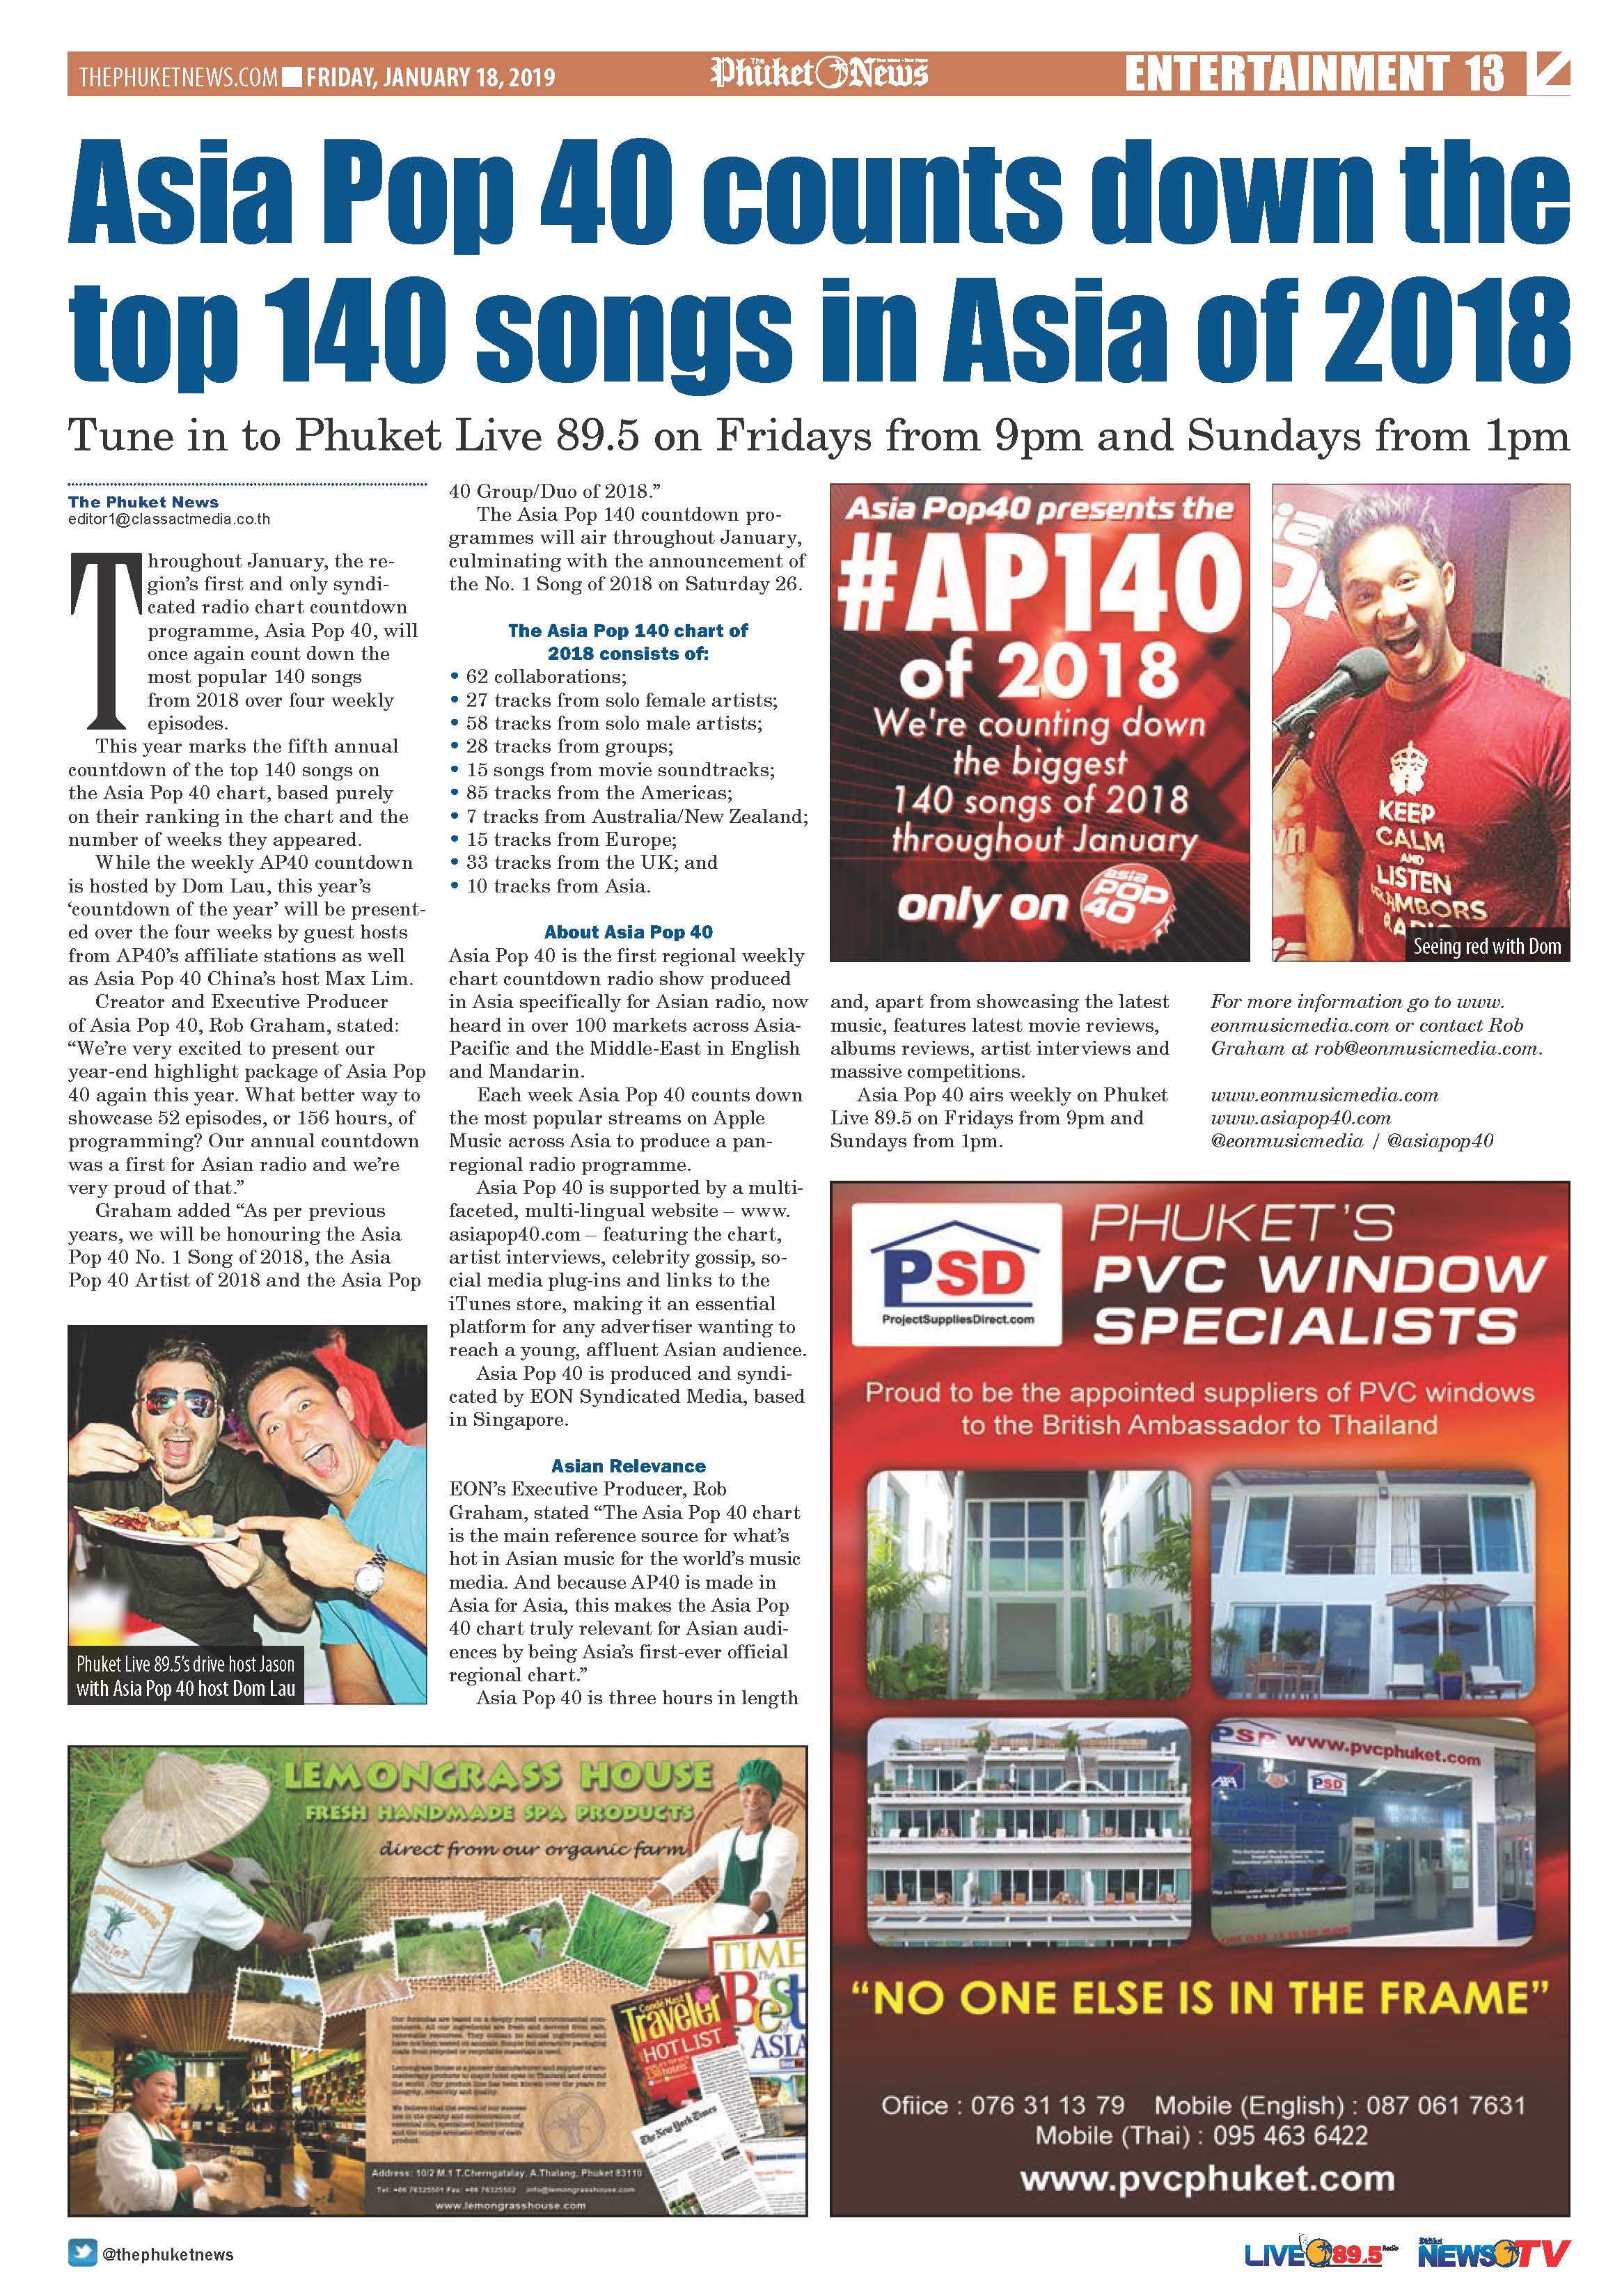 https://www.thephuketnews.com/archive/18-01-2019/18-01-2019_Page_13.jpg | Phuket Newspaper - 18-01-2019 Page 13